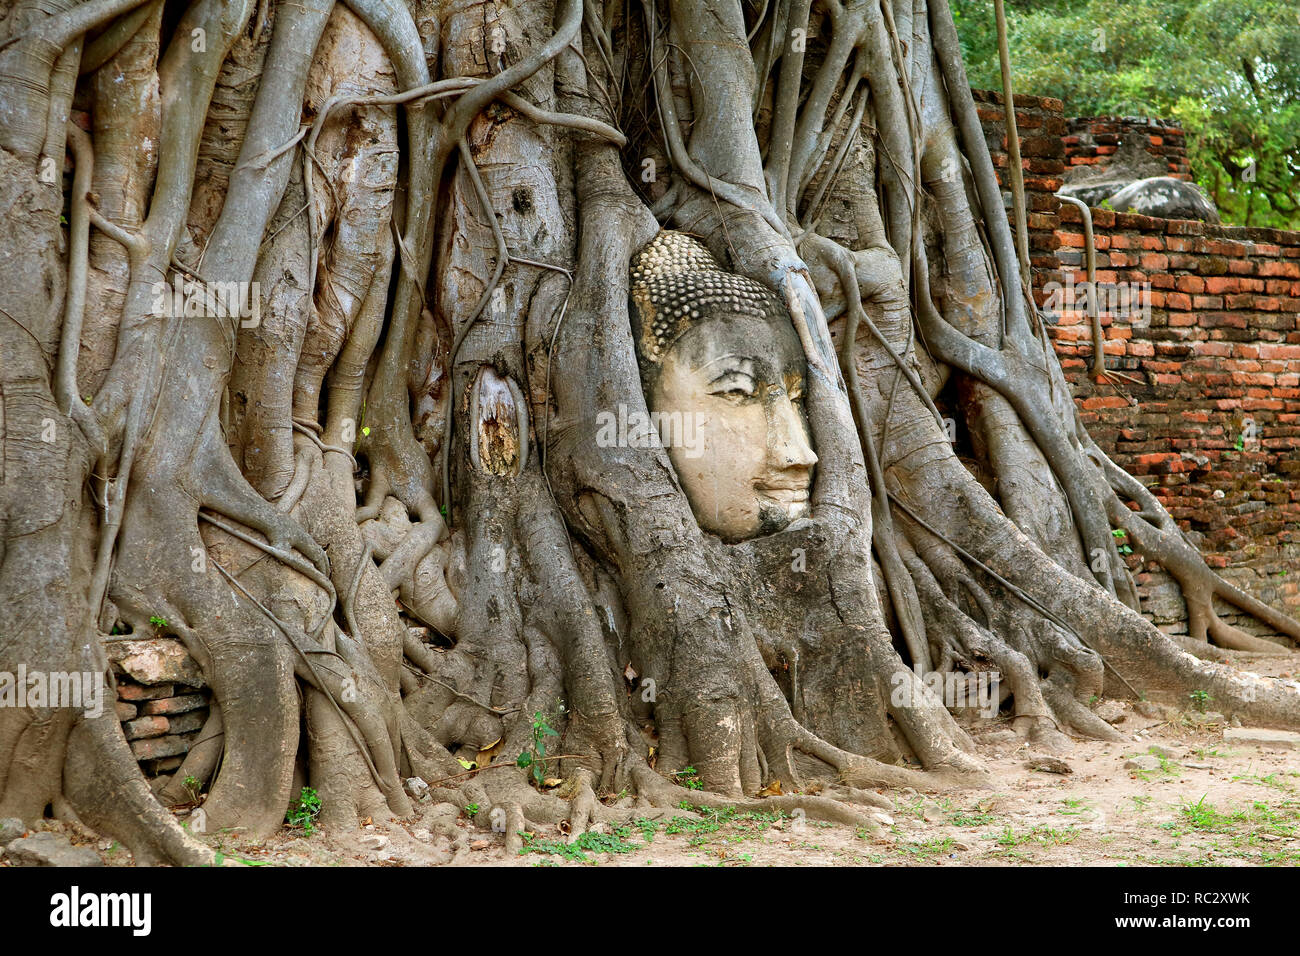 Head of the Buddha Image in the Bodhi Tree Roots, Wat Mahathat Ancient Temple, Ayutthaya Historical Park, Archaeological site in Thailand Stock Photo